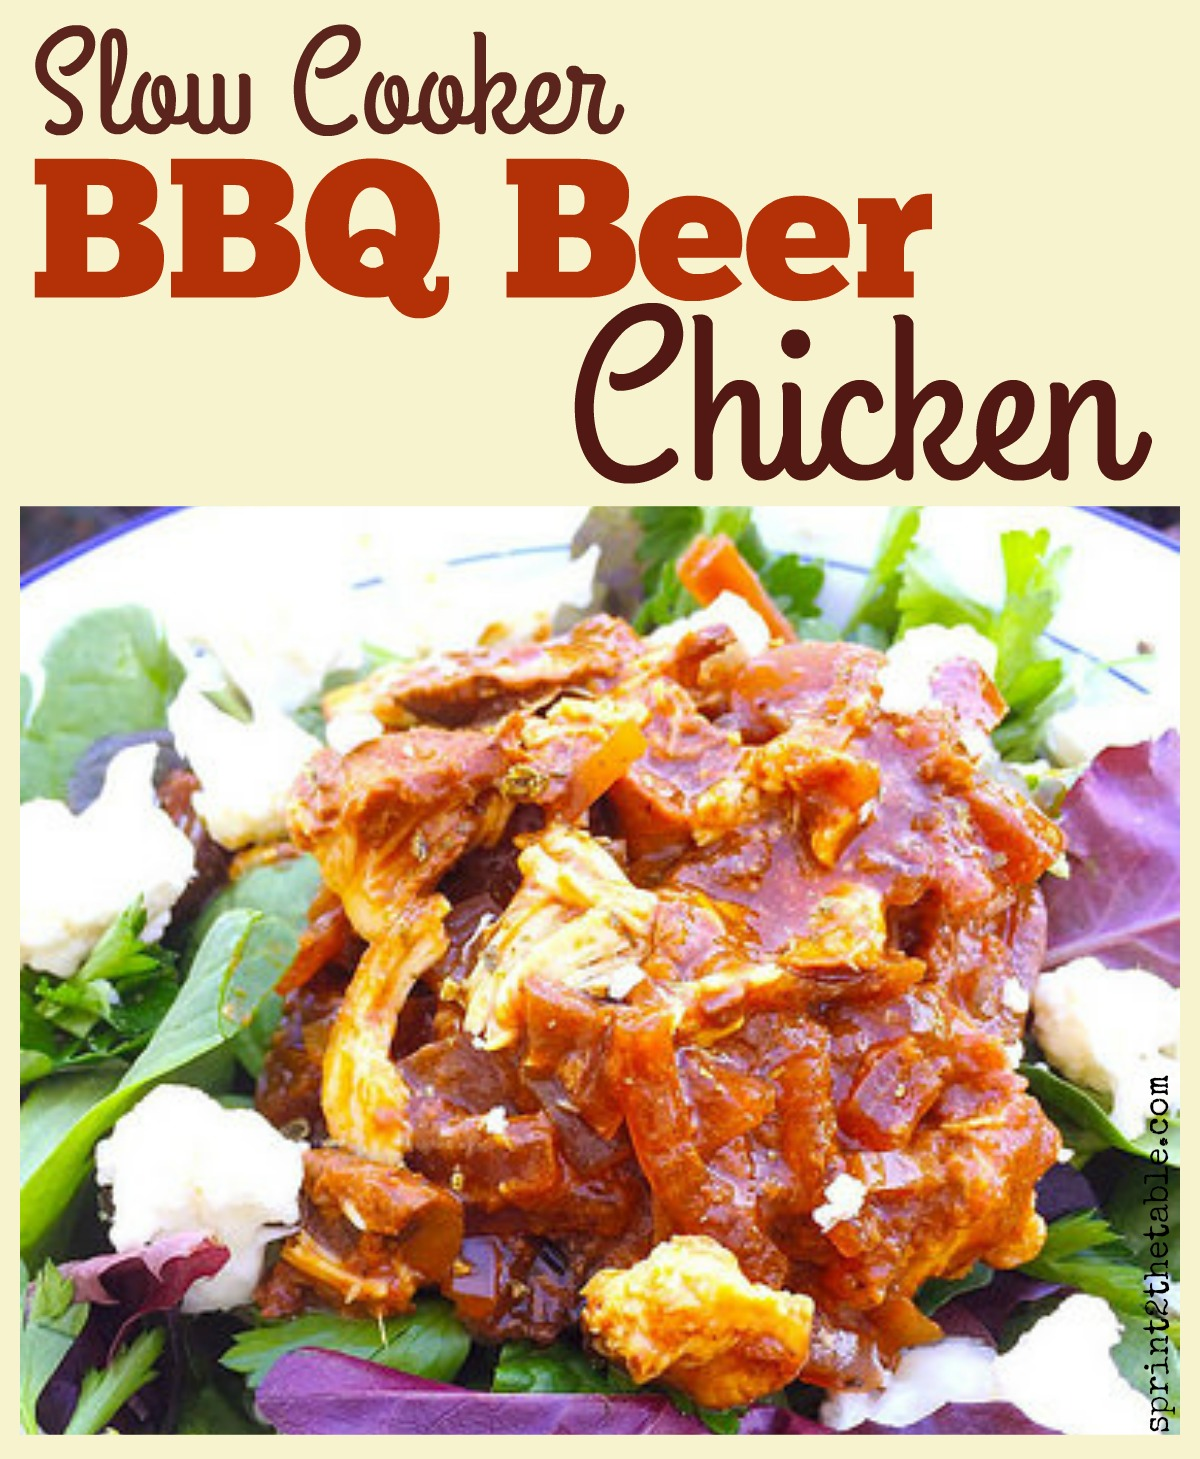 Awesome weeknight easy dinner for four - Slow Cooker BBQ Beer Chicken